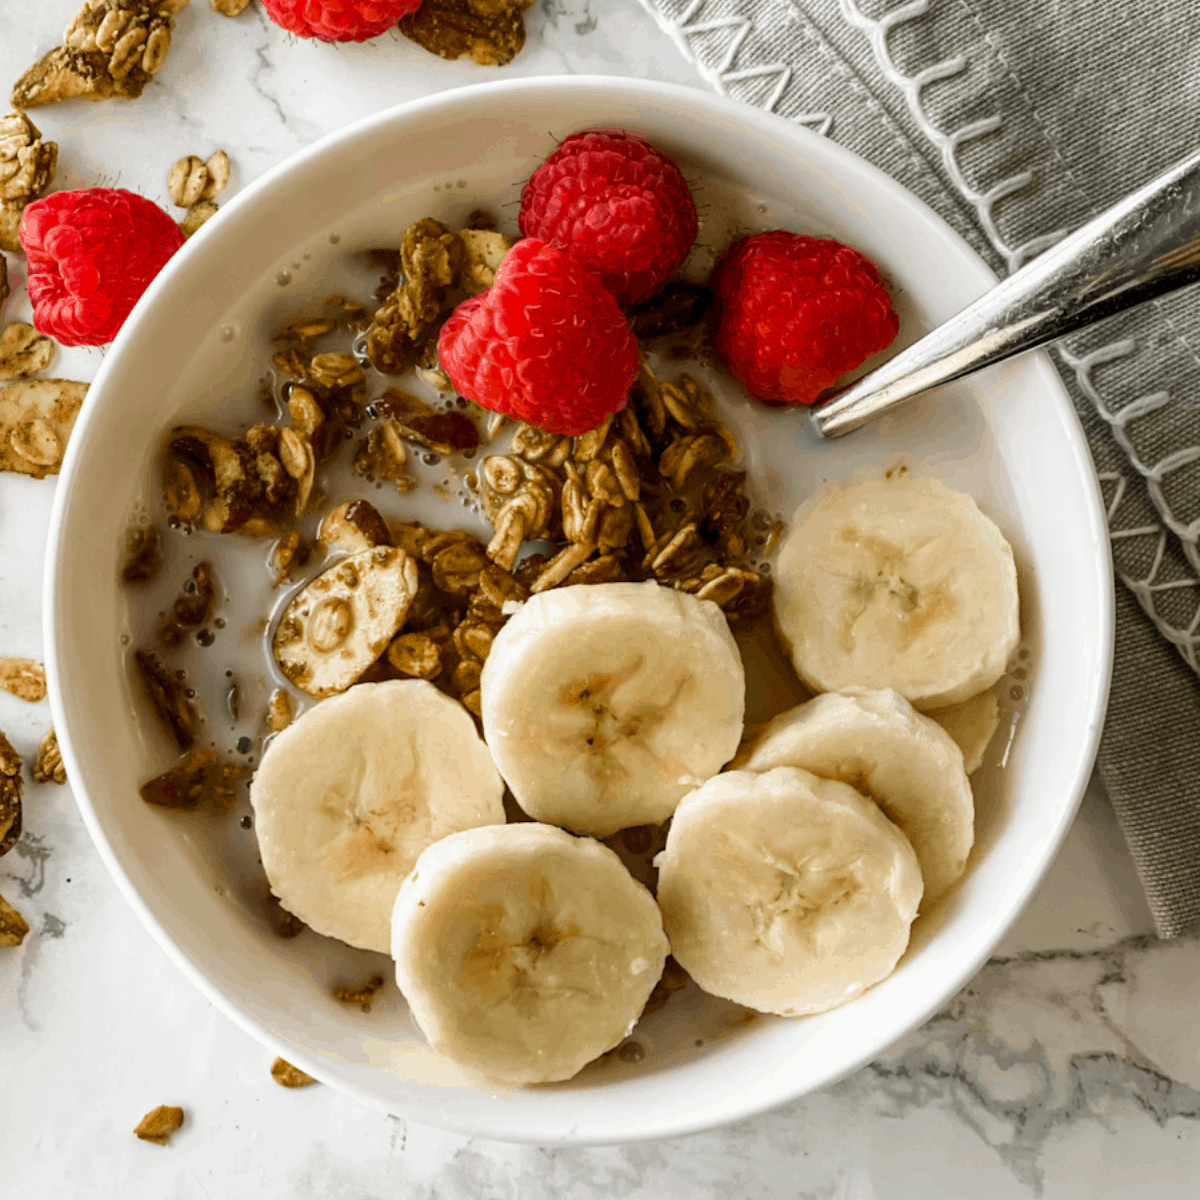 granola in a bowl with milk and bananas